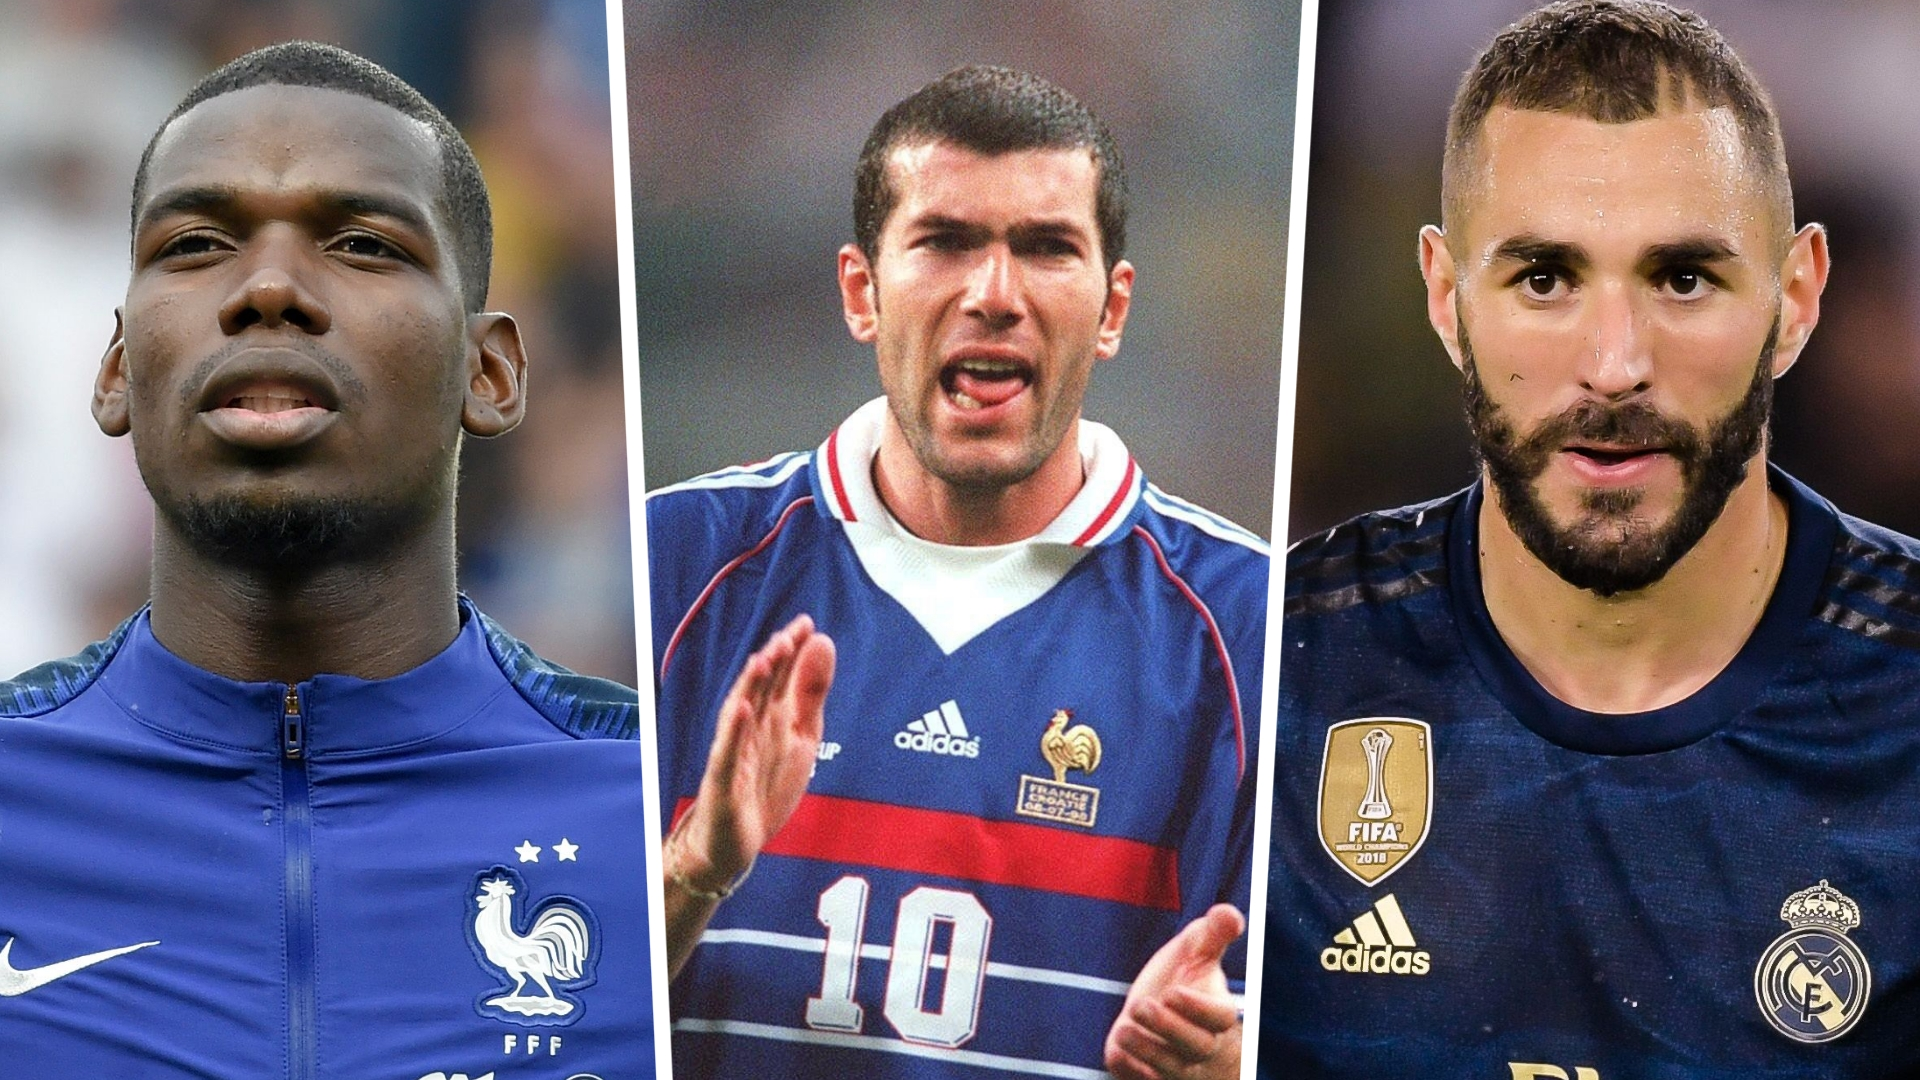 Picking an African Dream Team who played for France